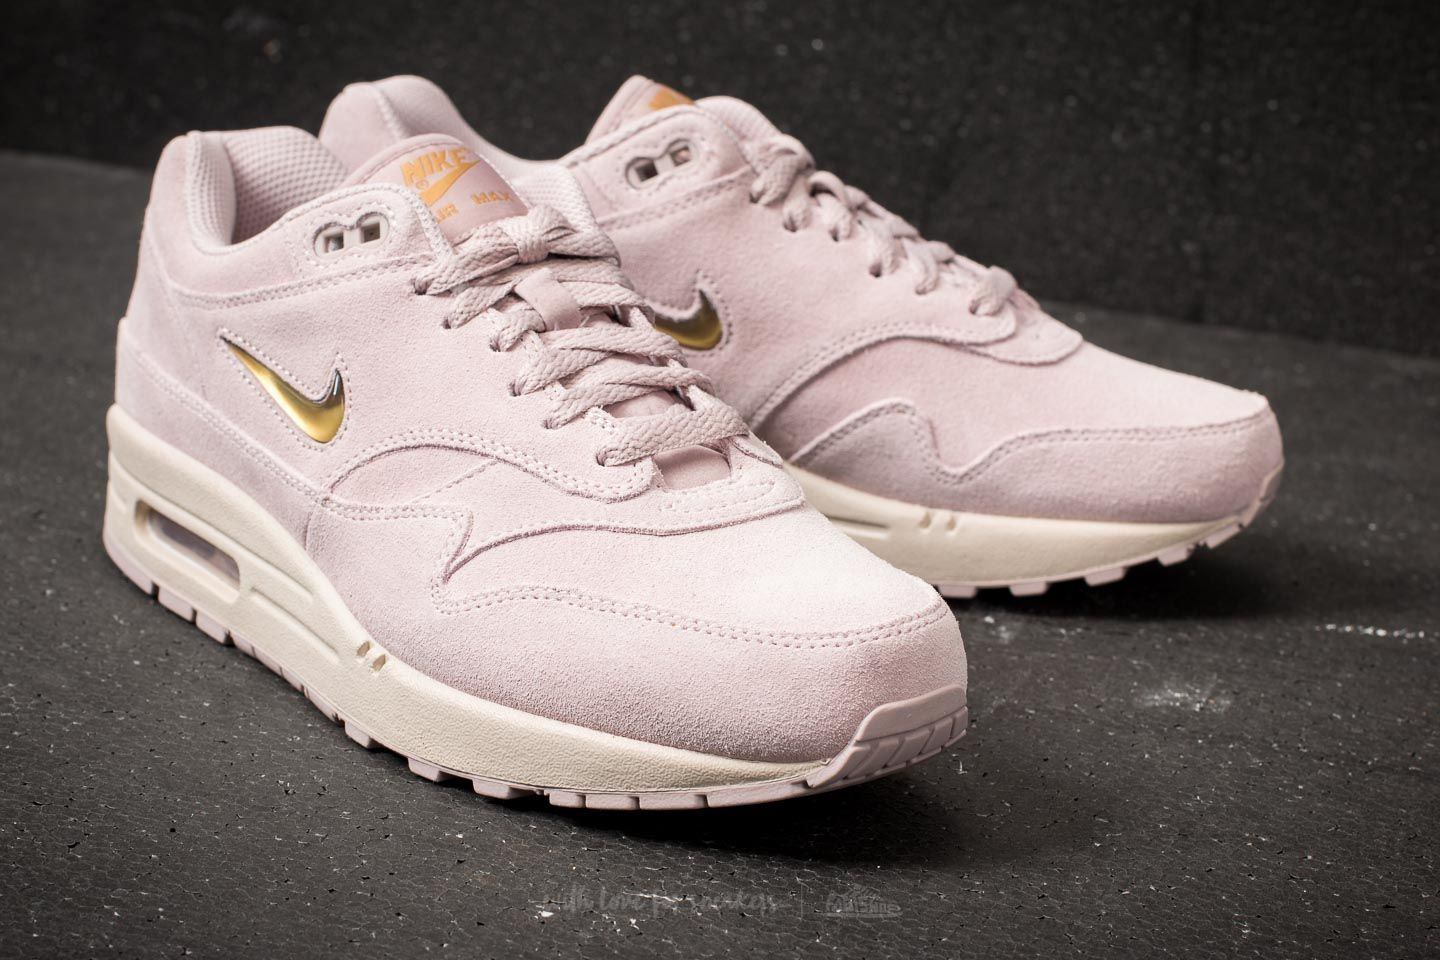 sale retailer 5a4df 18309 ... buy basket mode air max 90 leather gs nike nike air max 1 femme jaune  gris